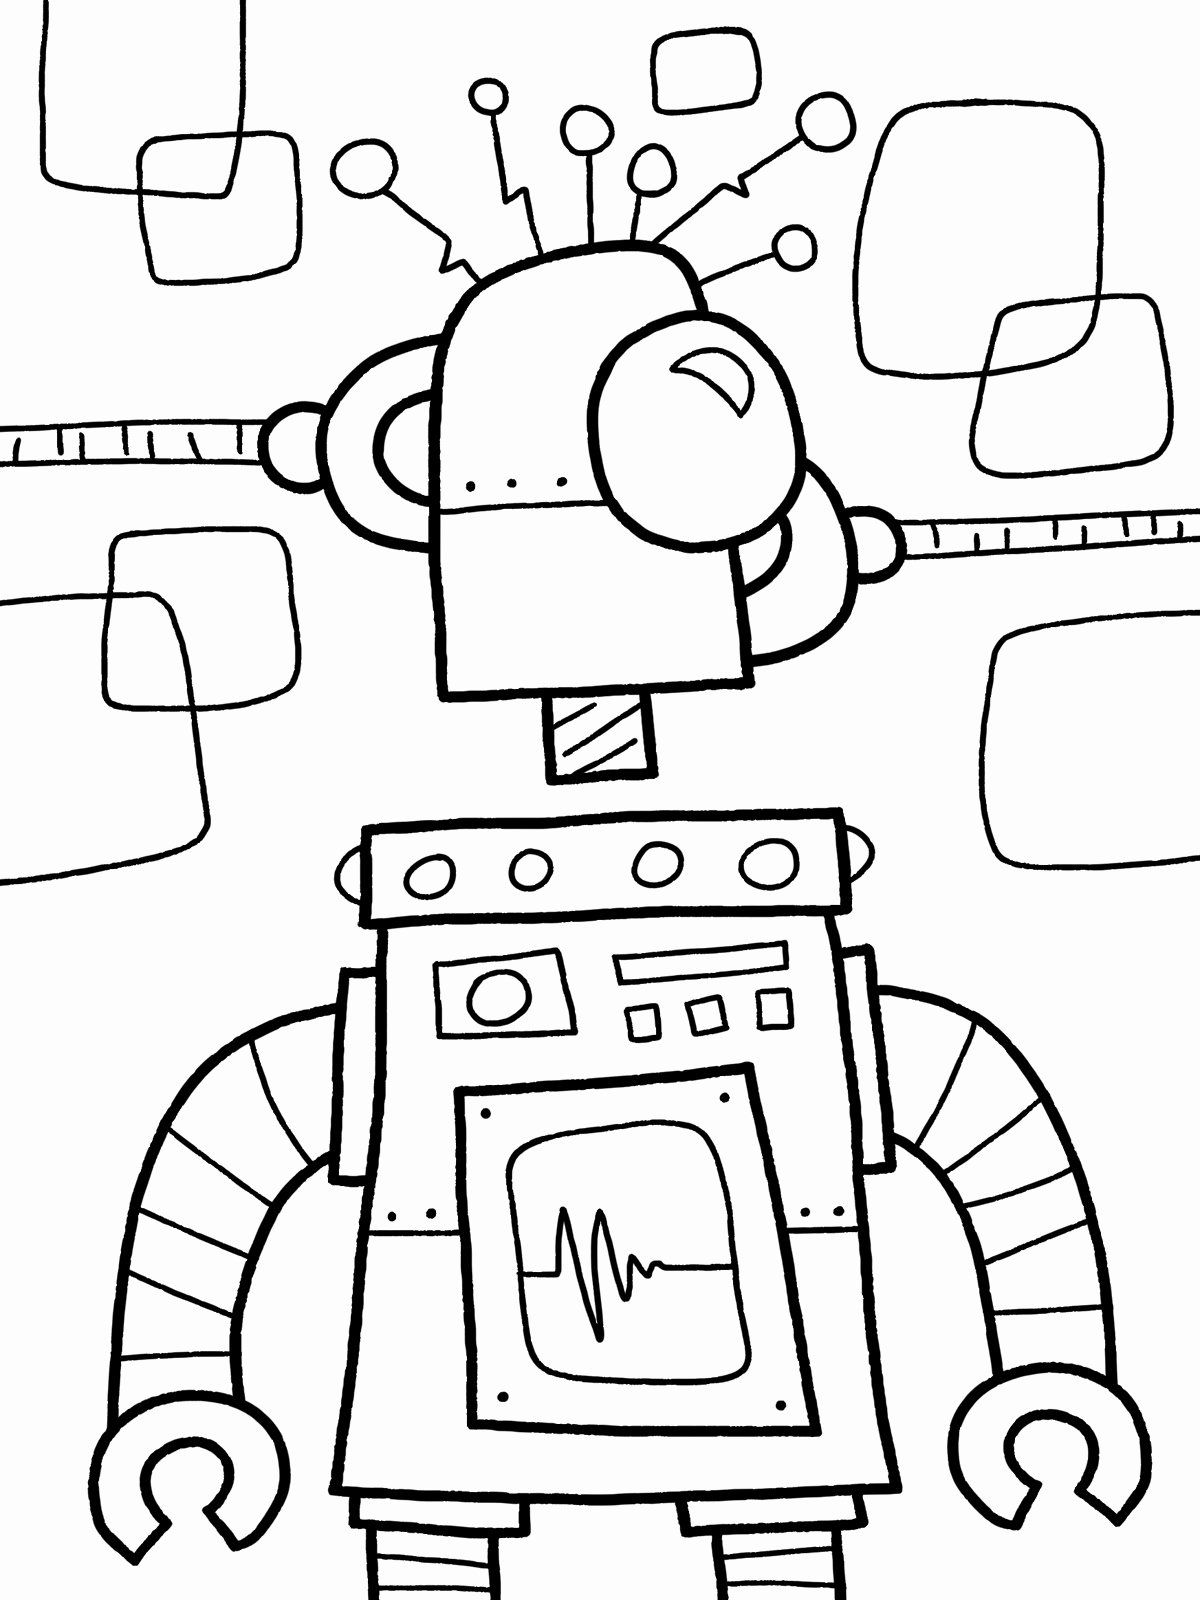 Printable Coloring Pages For Teenagers Lovely Free Printable Robot Coloring Pages Fo In 2020 Dinosaur Coloring Pages Toddler Coloring Book Coloring Pages For Teenagers